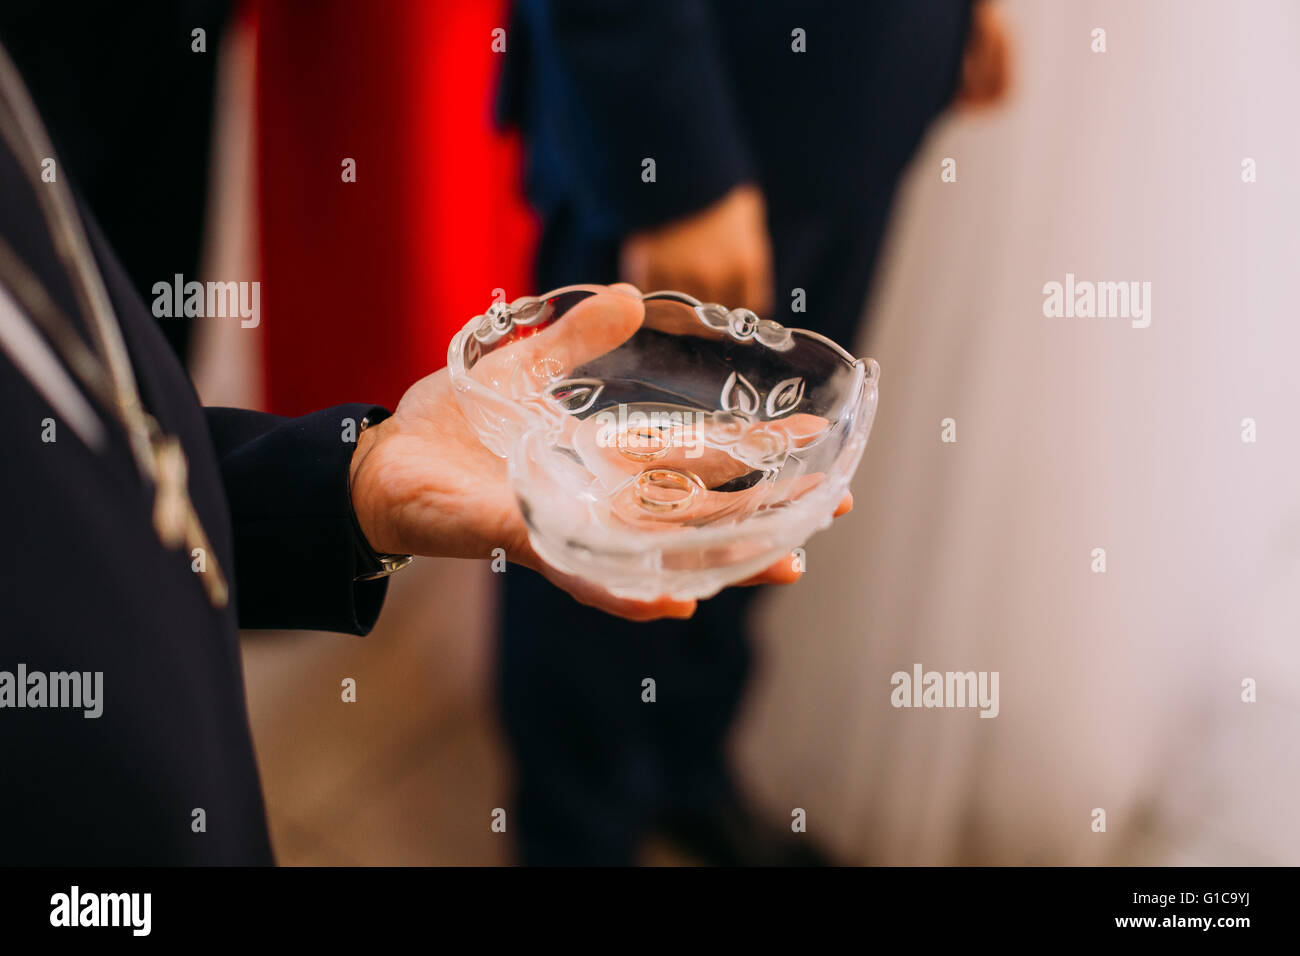 Man's hand holding heart-shaped crystal bowl with two wedding rings during the ceremony - Stock Image